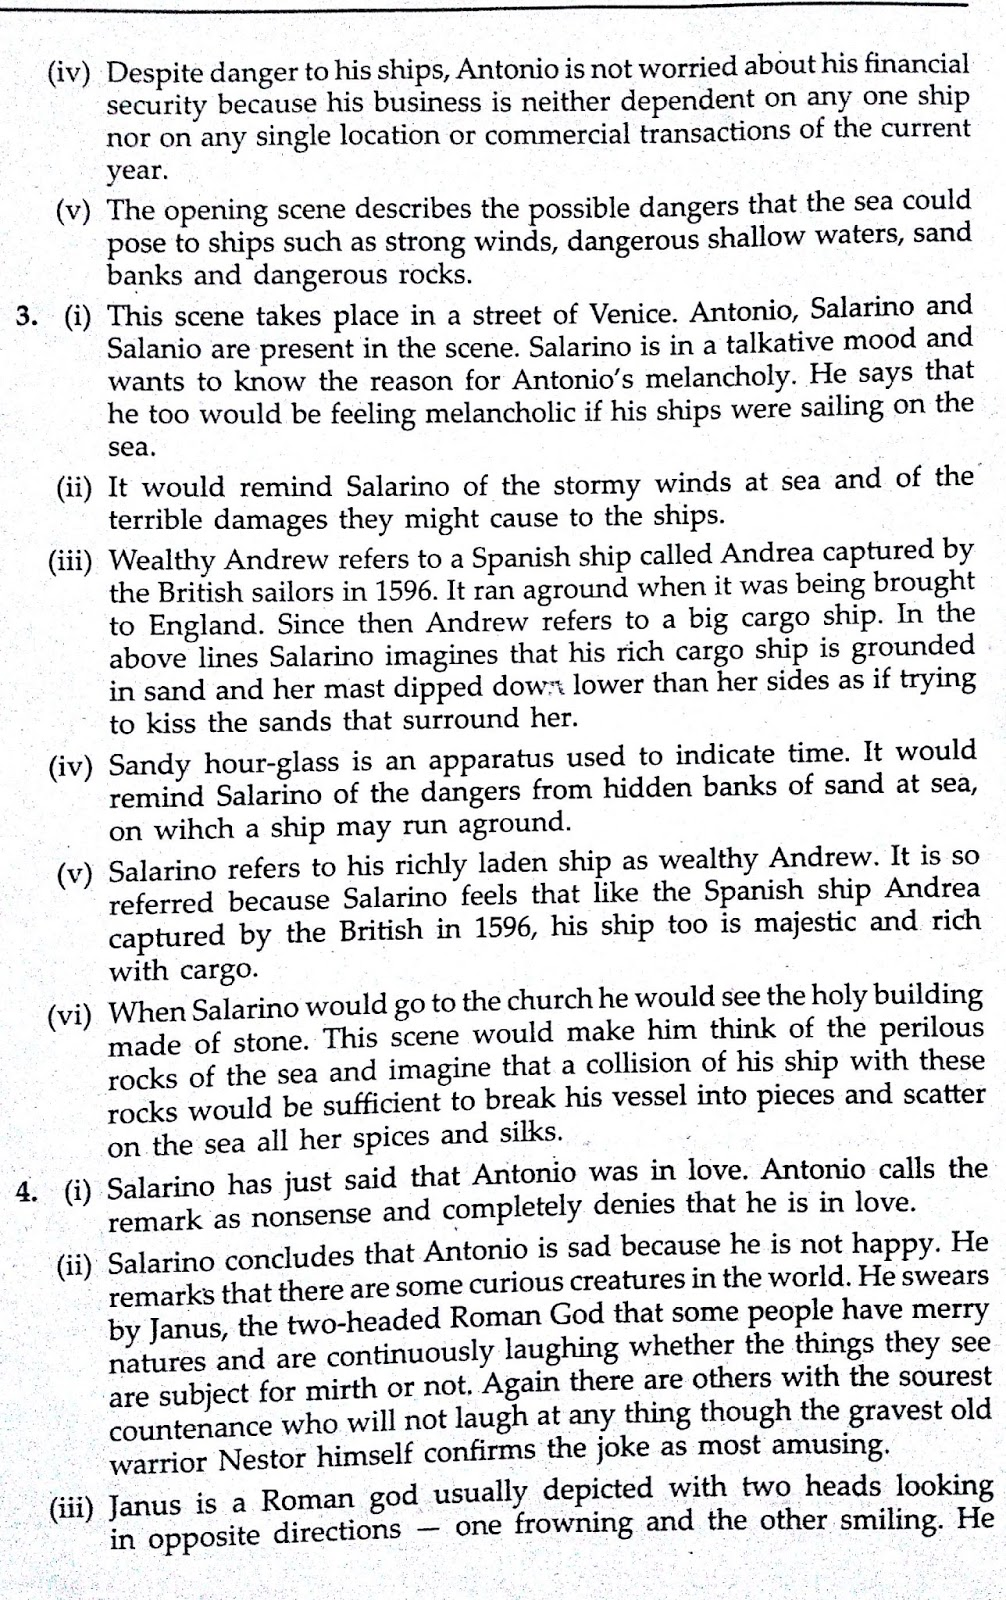 Workbook Answers/Solutions of The Merchant of Venice, Act 1 Scene 1